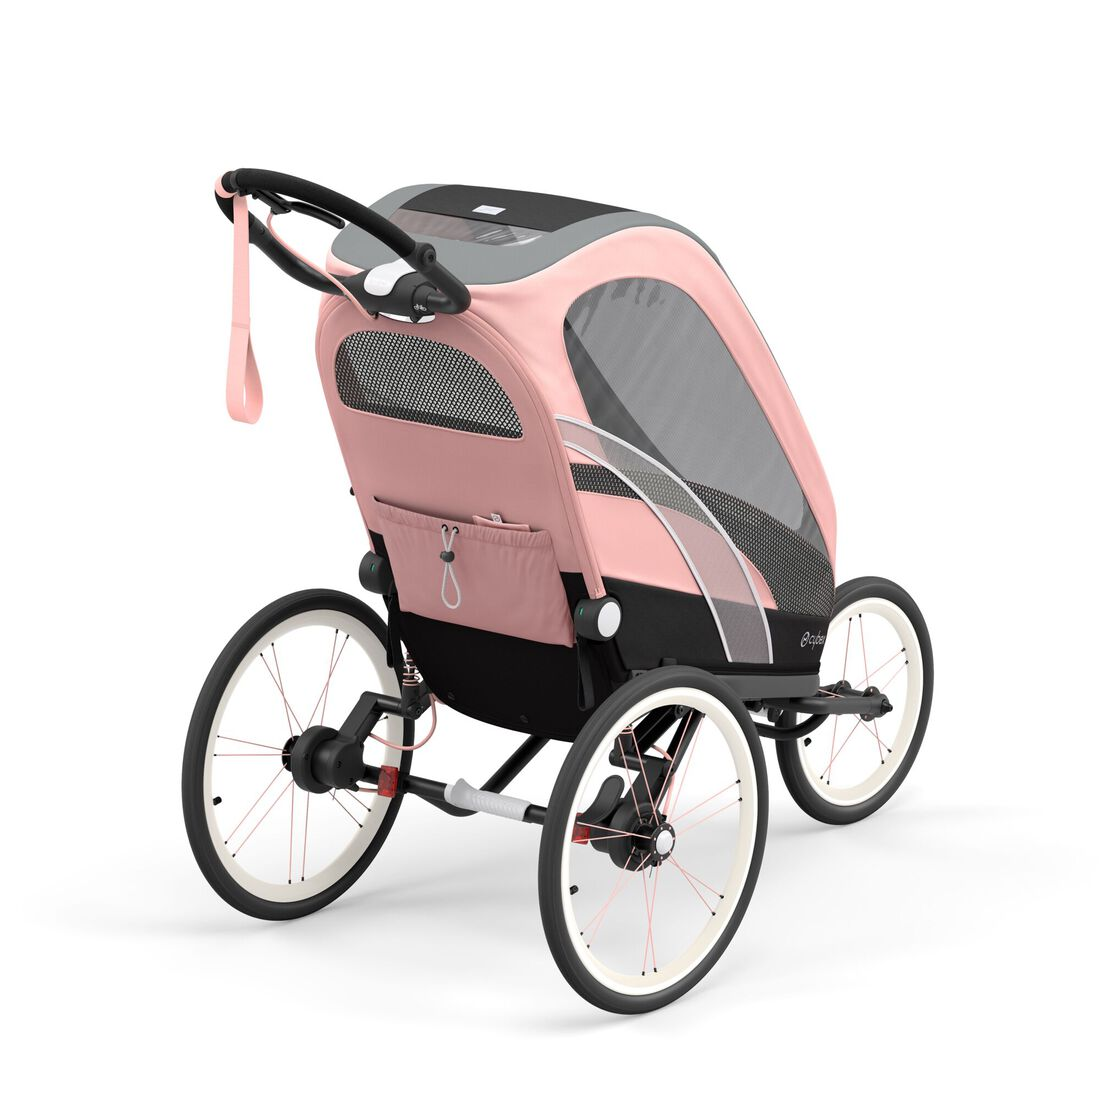 CYBEX Zeno Seat Pack - Silver Pink in Silver Pink large image number 5